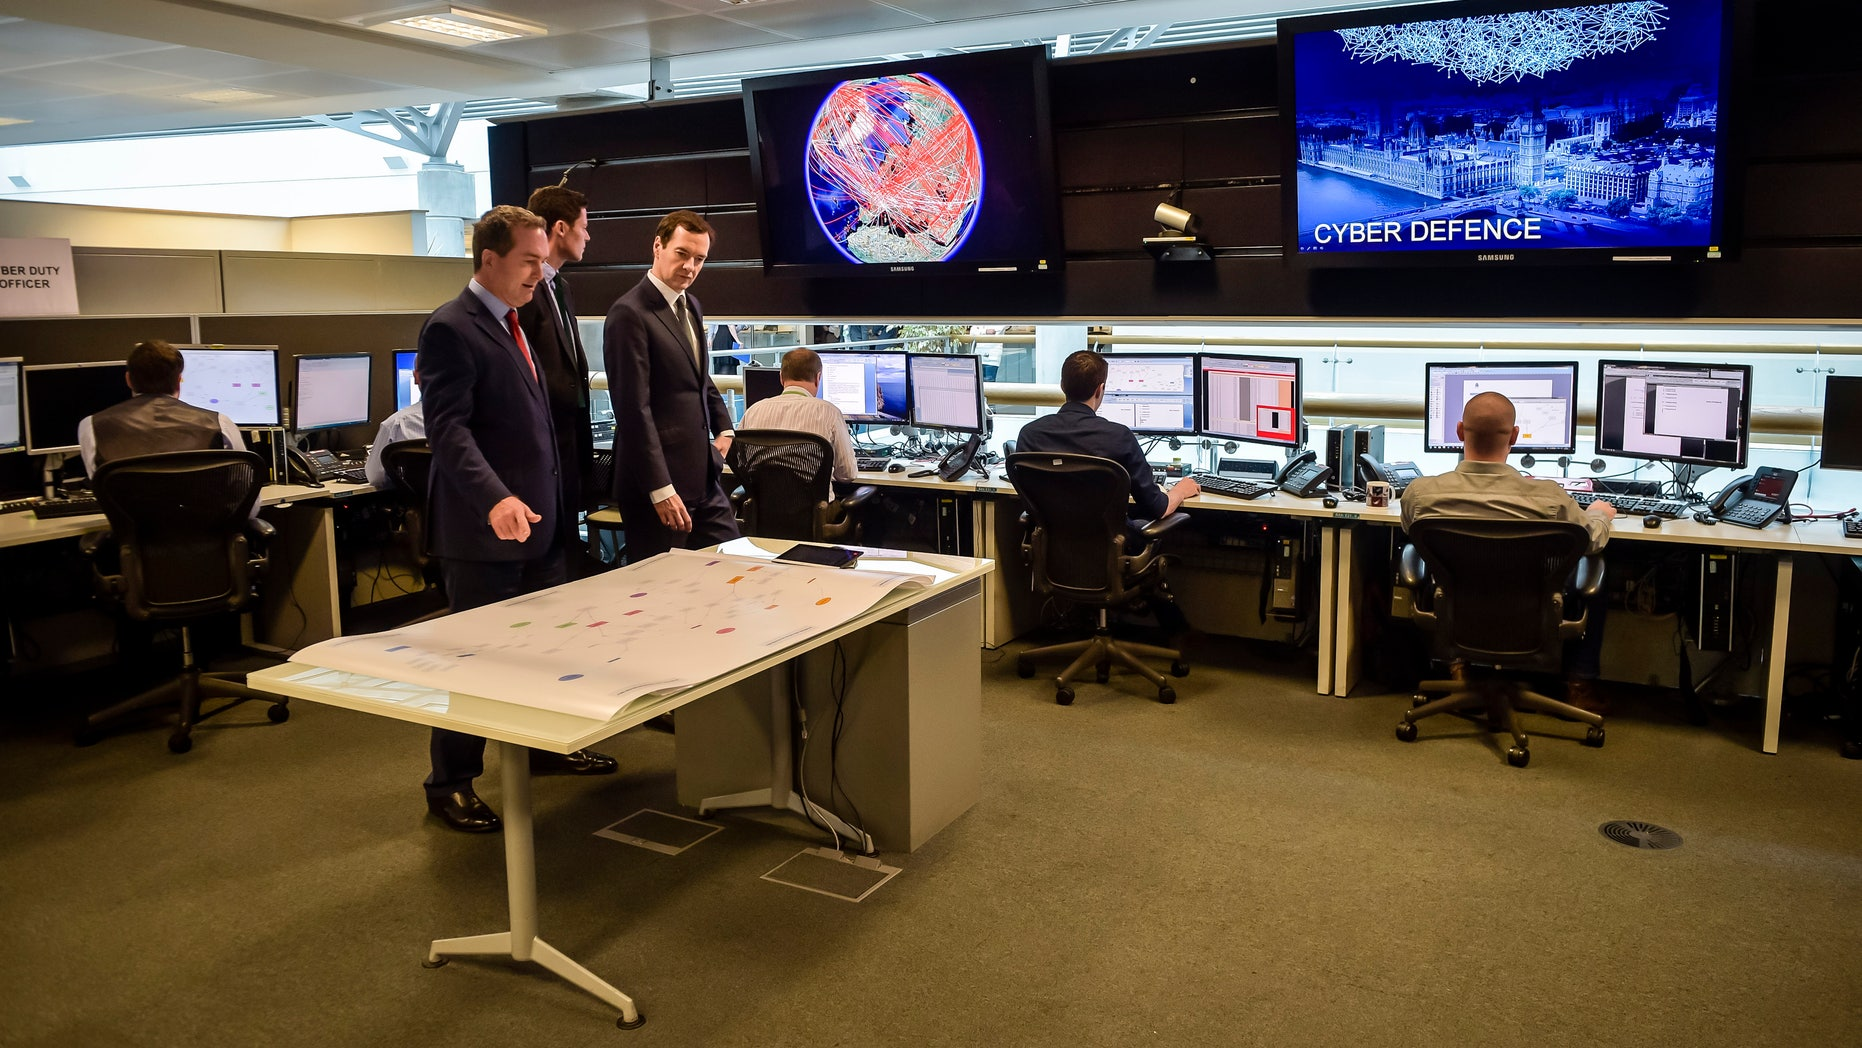 Britain's Chancellor of the Exchequer George Osborne is shown the 24 hour Operations Room inside GCHQ, by the Director of GCHQ Robert Hannigan (C) and Cheltenham MP Alex Chalk (L), in Cheltenham November 17, 2015. (REUTERS/Ben Birchall/Pool)